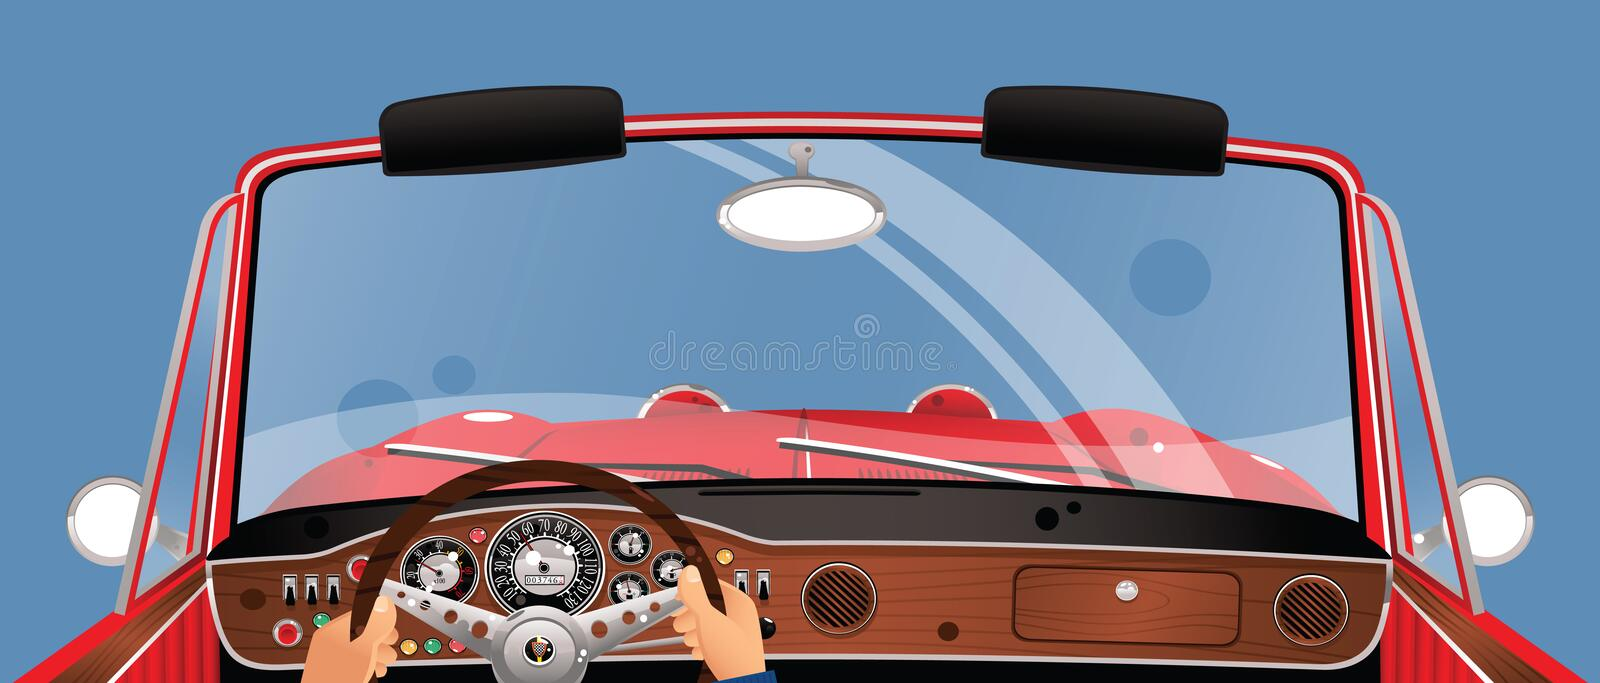 Driving a convertible auto royalty free stock image